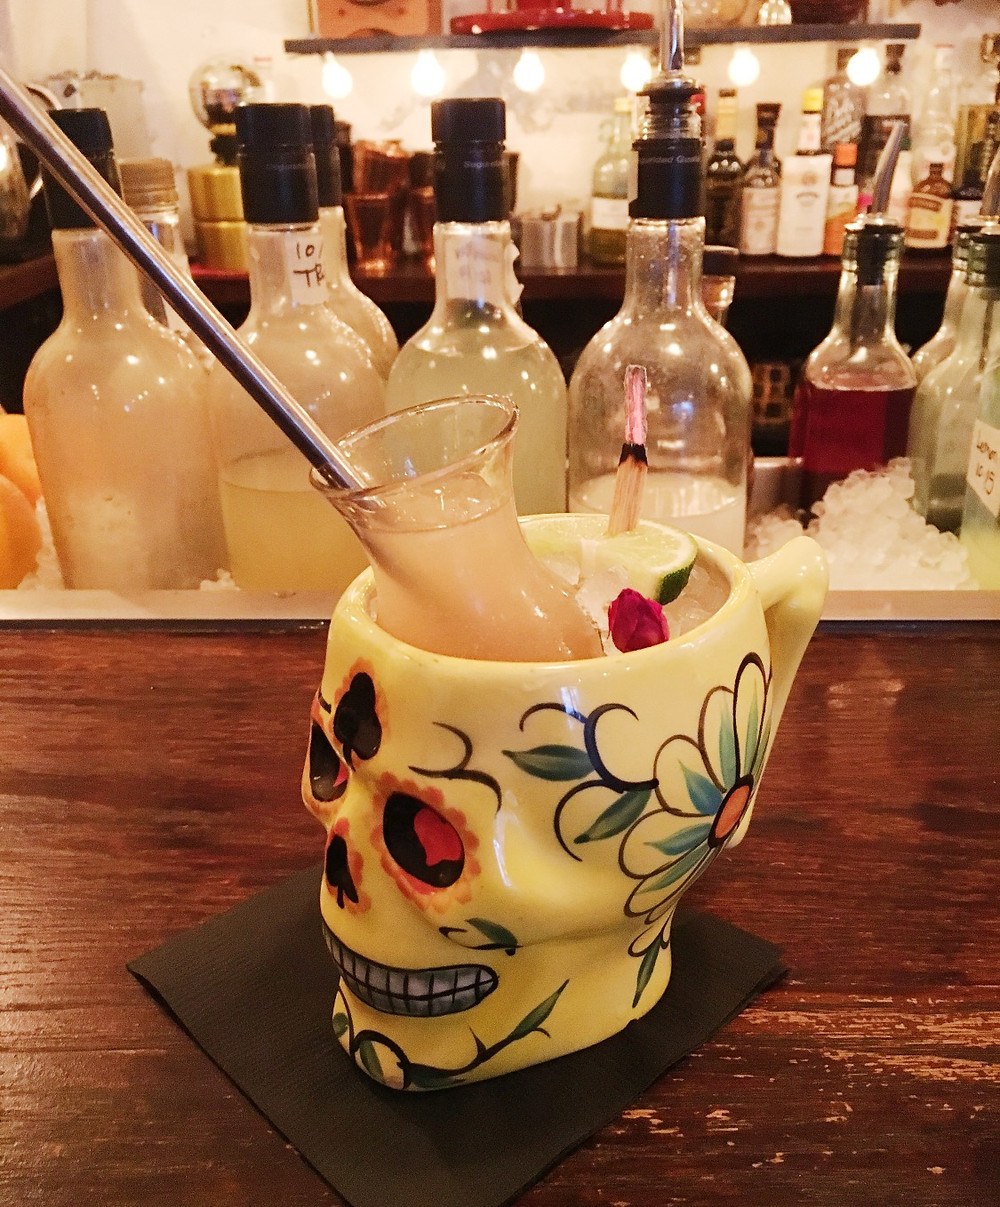 The Grapefruit cocktail at ROKC Harlem